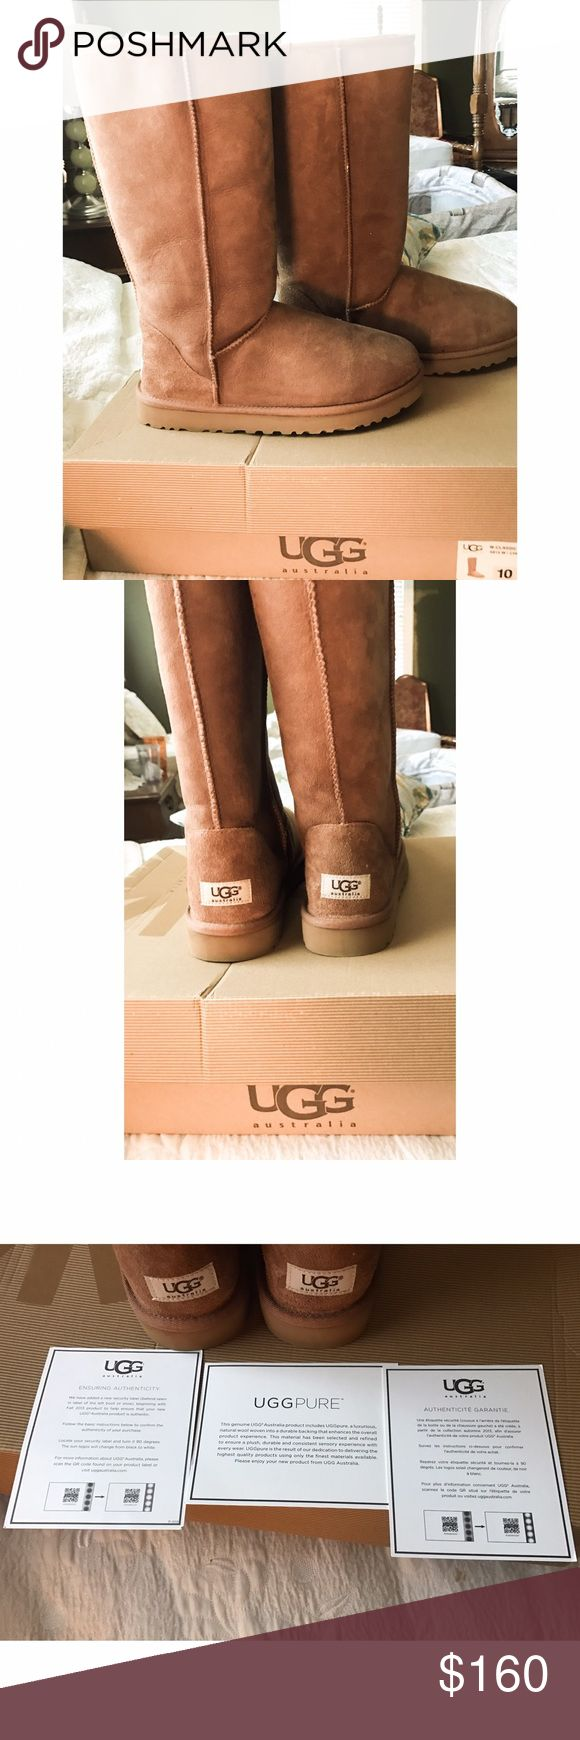 UGG classic tall boot  AUTHENTIC NIB SZ 10 Ugg Australia classic tall boot in chestnut sz 10 new in box with authentication. Never worn. Received for christmas but chose the get the shorter boot instead, so I'm selling these. Perfect never worn brand new. Feel free to make reasonable offers. Already discounted from what they are online at ugg UGG Shoes Winter & Rain Boots